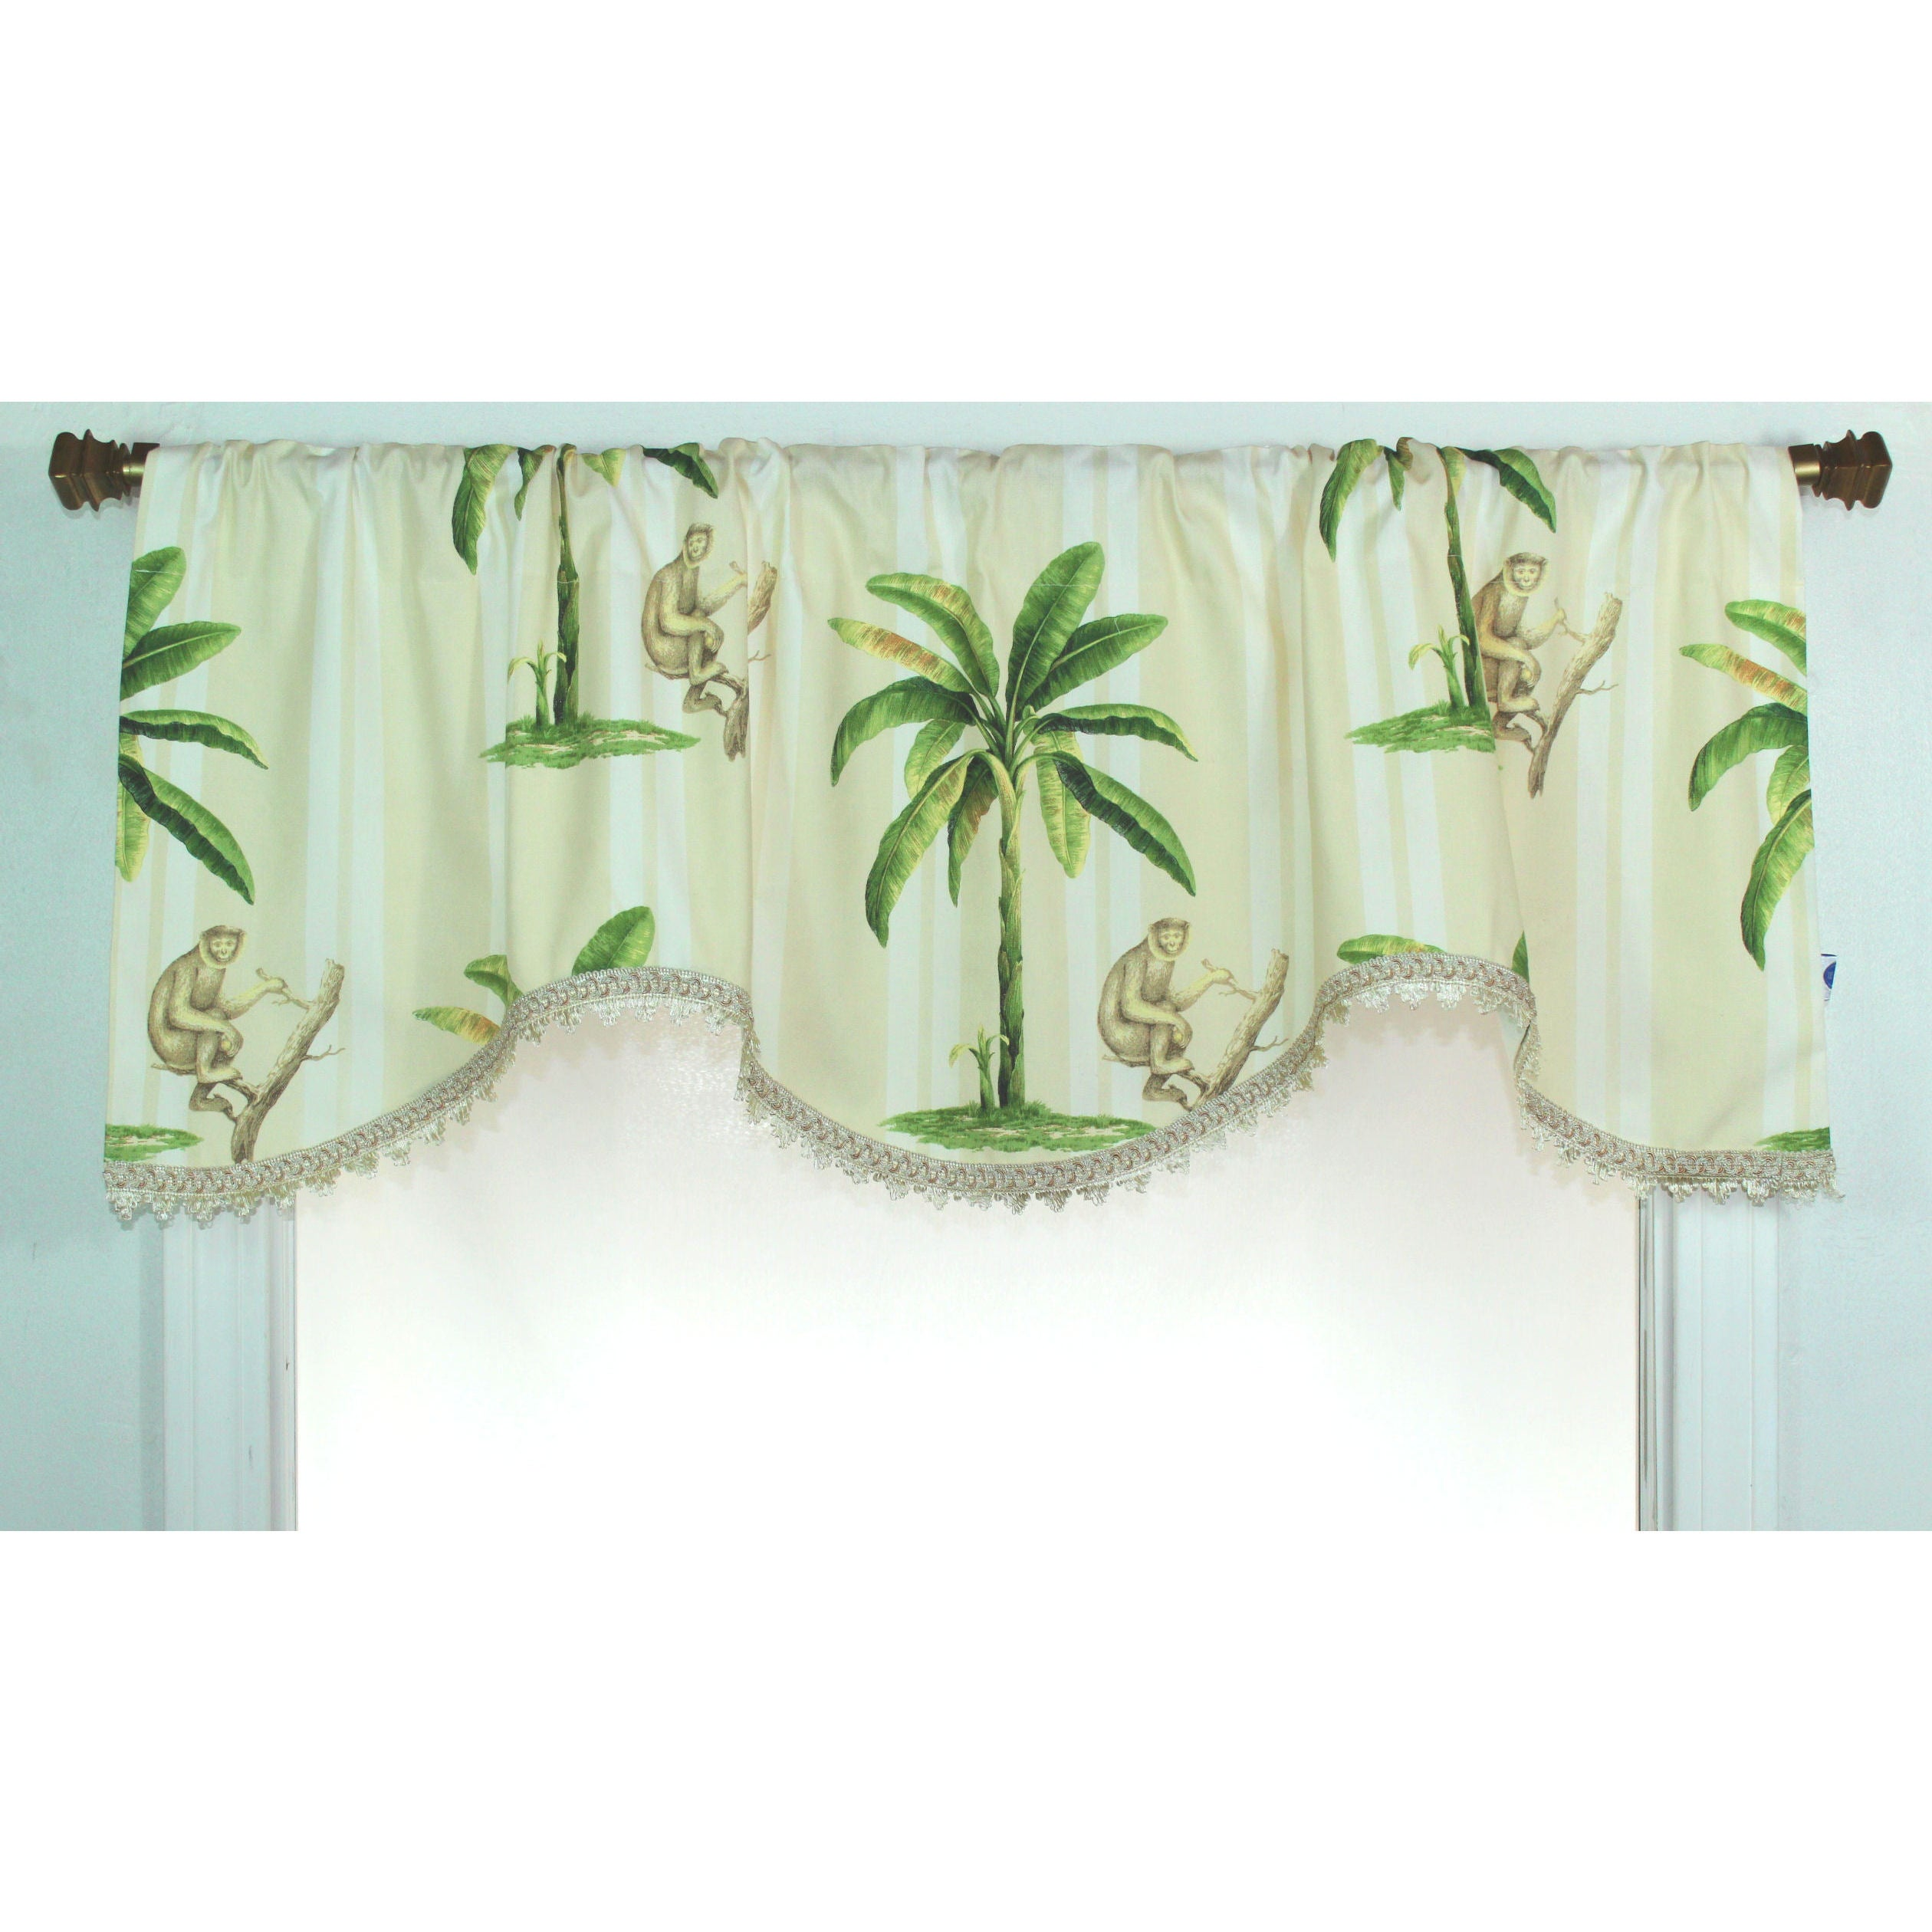 Rlf Home Las Palmas Monkey Cornice Window Valance at Sears.com